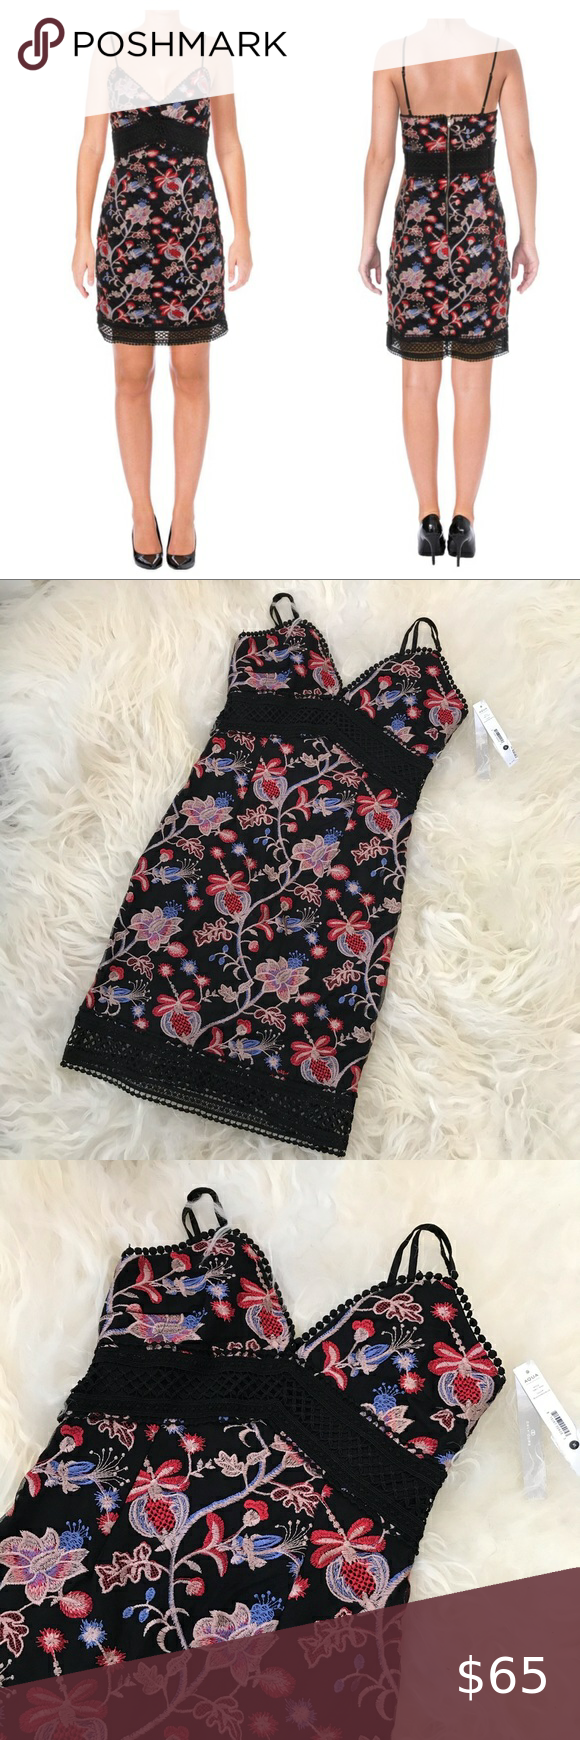 Aqua Floral Embroidery Scalloped Trim Casual Dress Casual Dress Clothes For Women Clothes Design